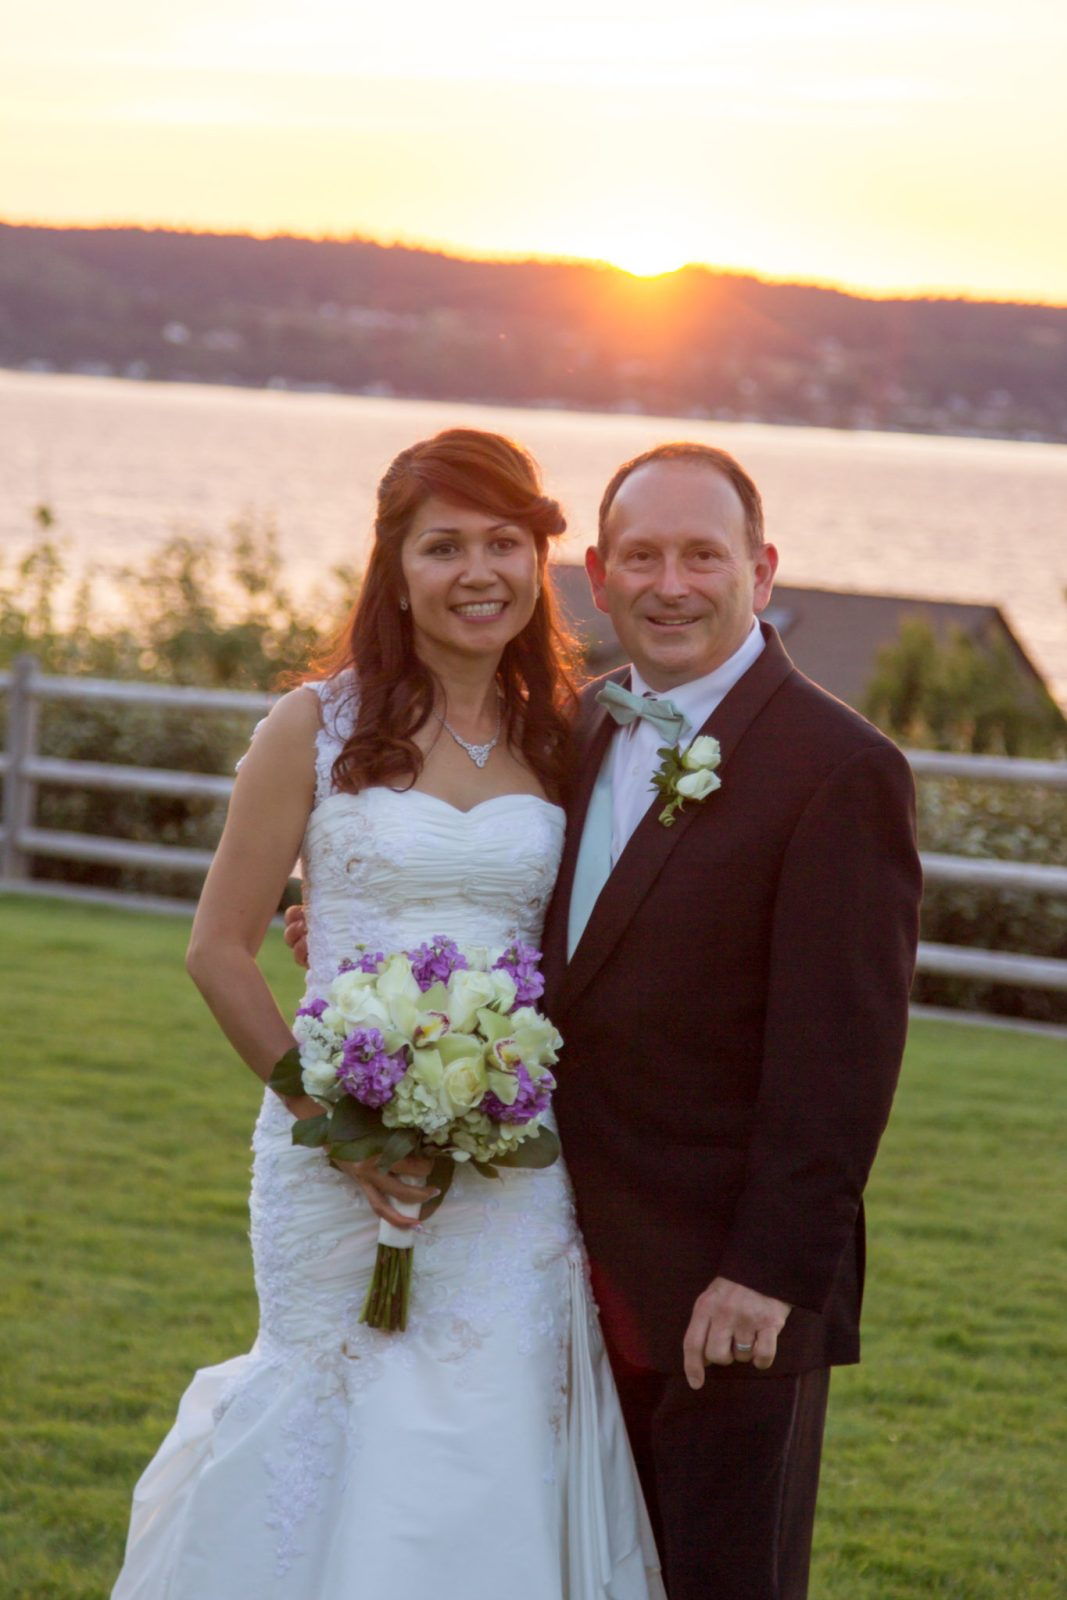 Mukilteo Lighthouse Wedding jn8 447 MUKILTEO LIGHTHOUSE WEDDING | MUKILTEO WEDDING PHOTOGRAPHER